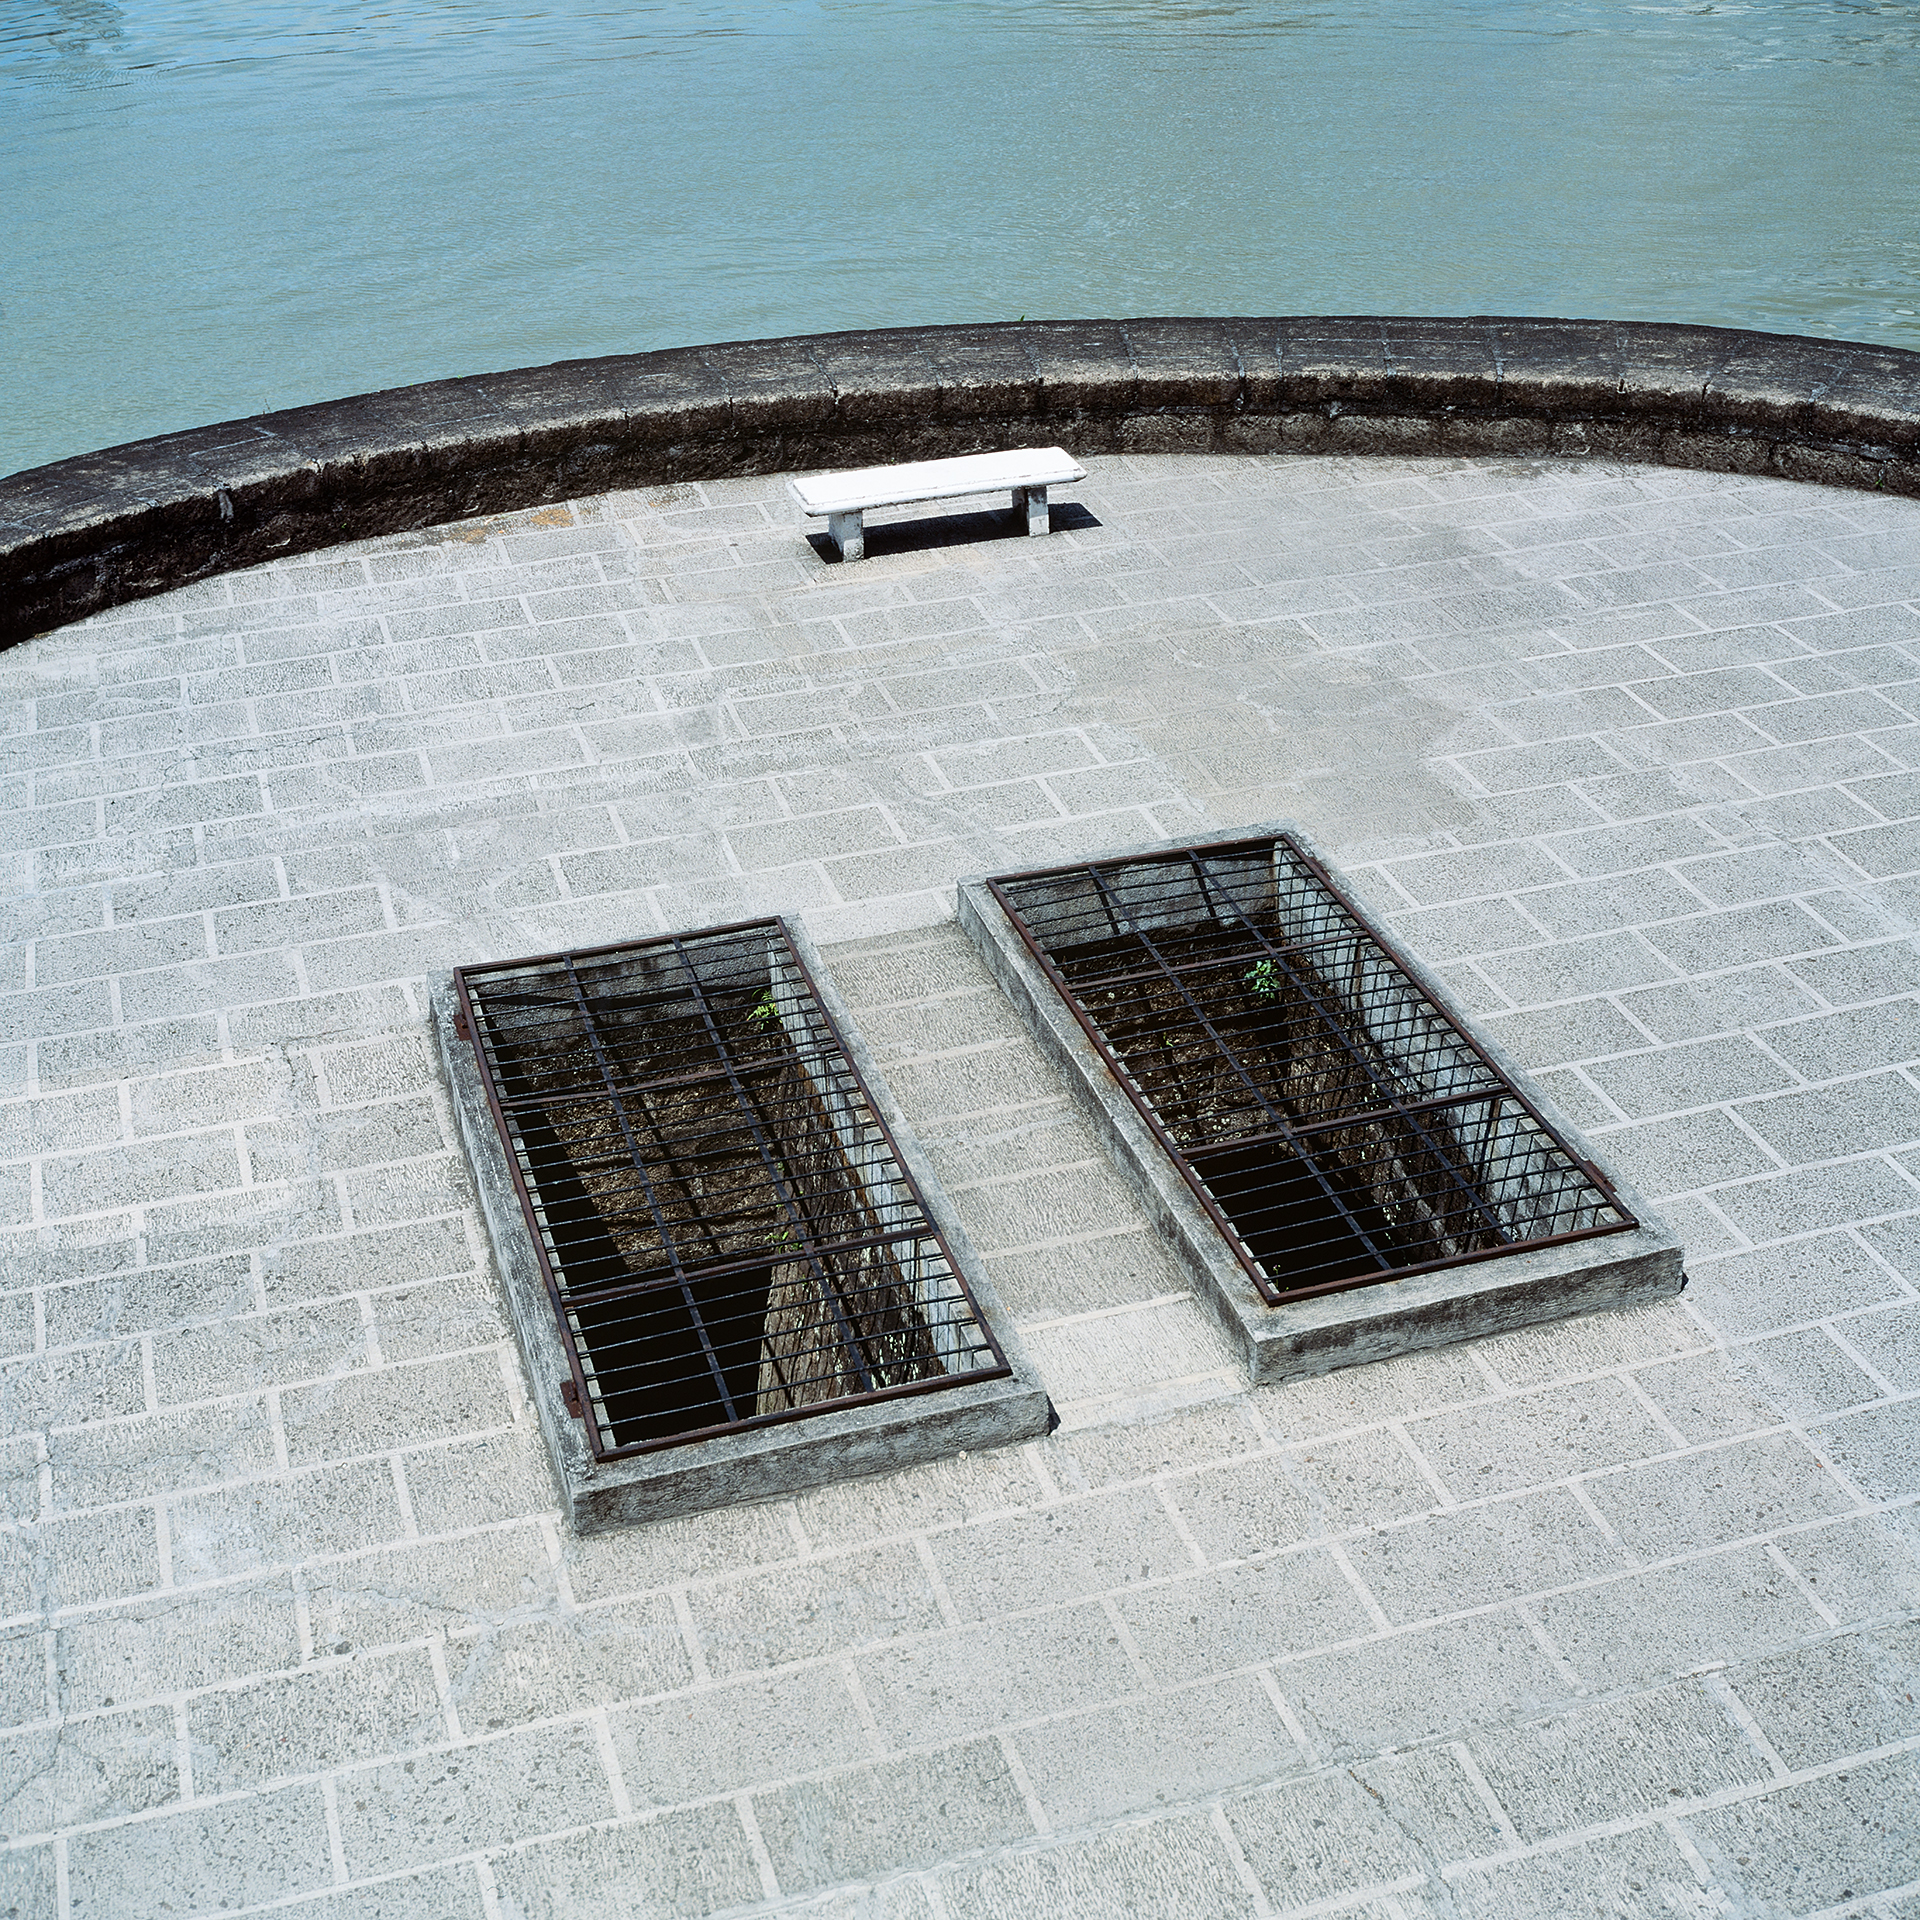 Grates over the jail cells at Fort Santiago